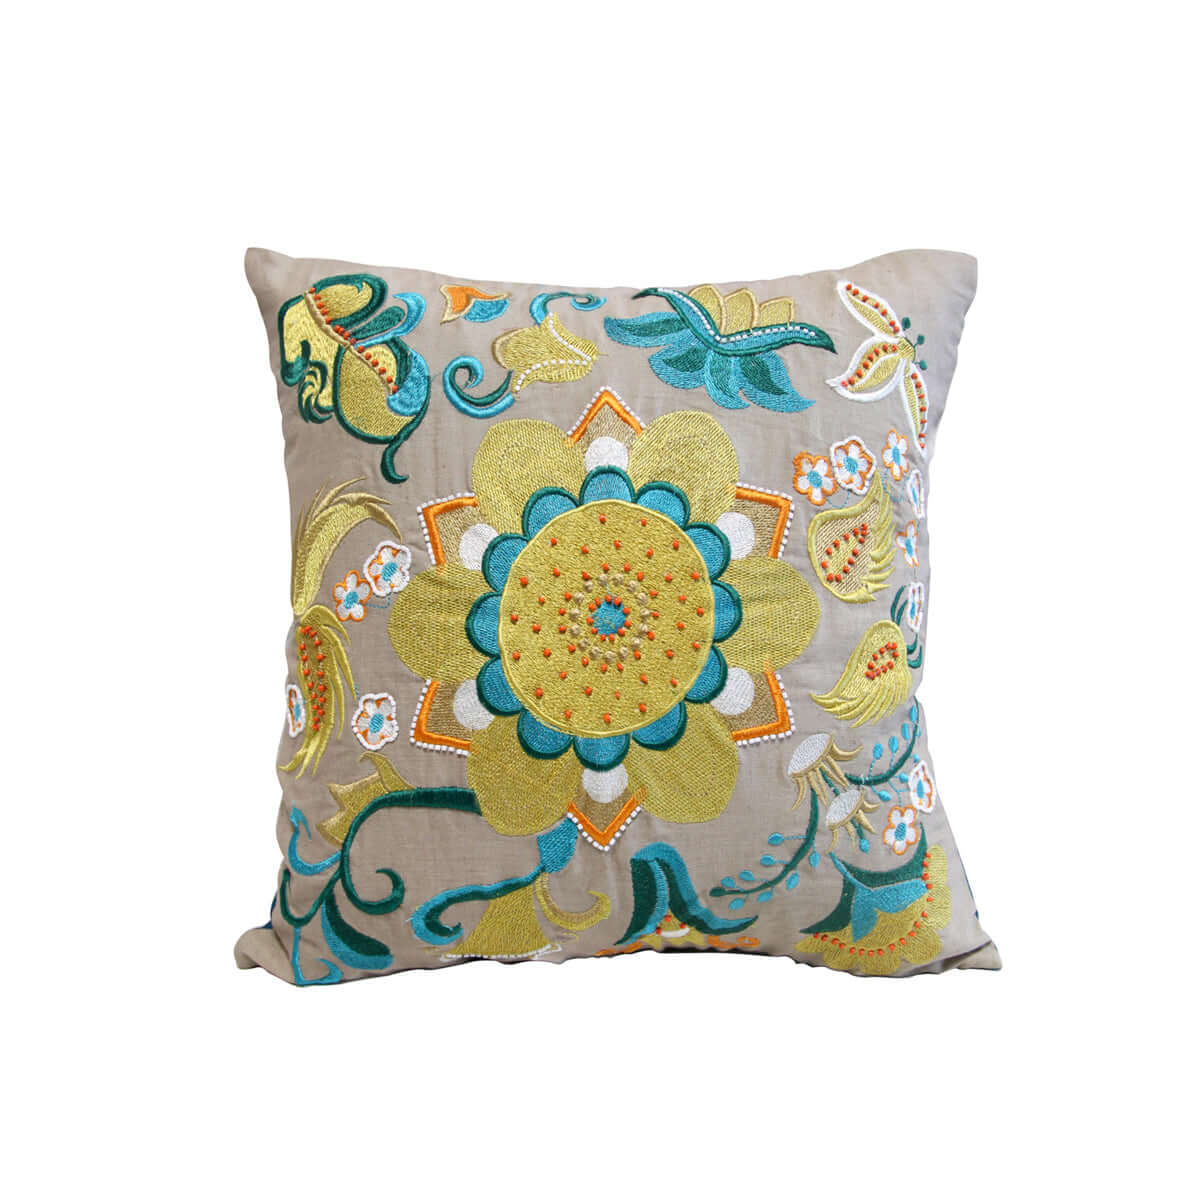 Alia Floral Cushion Cover (without insert)